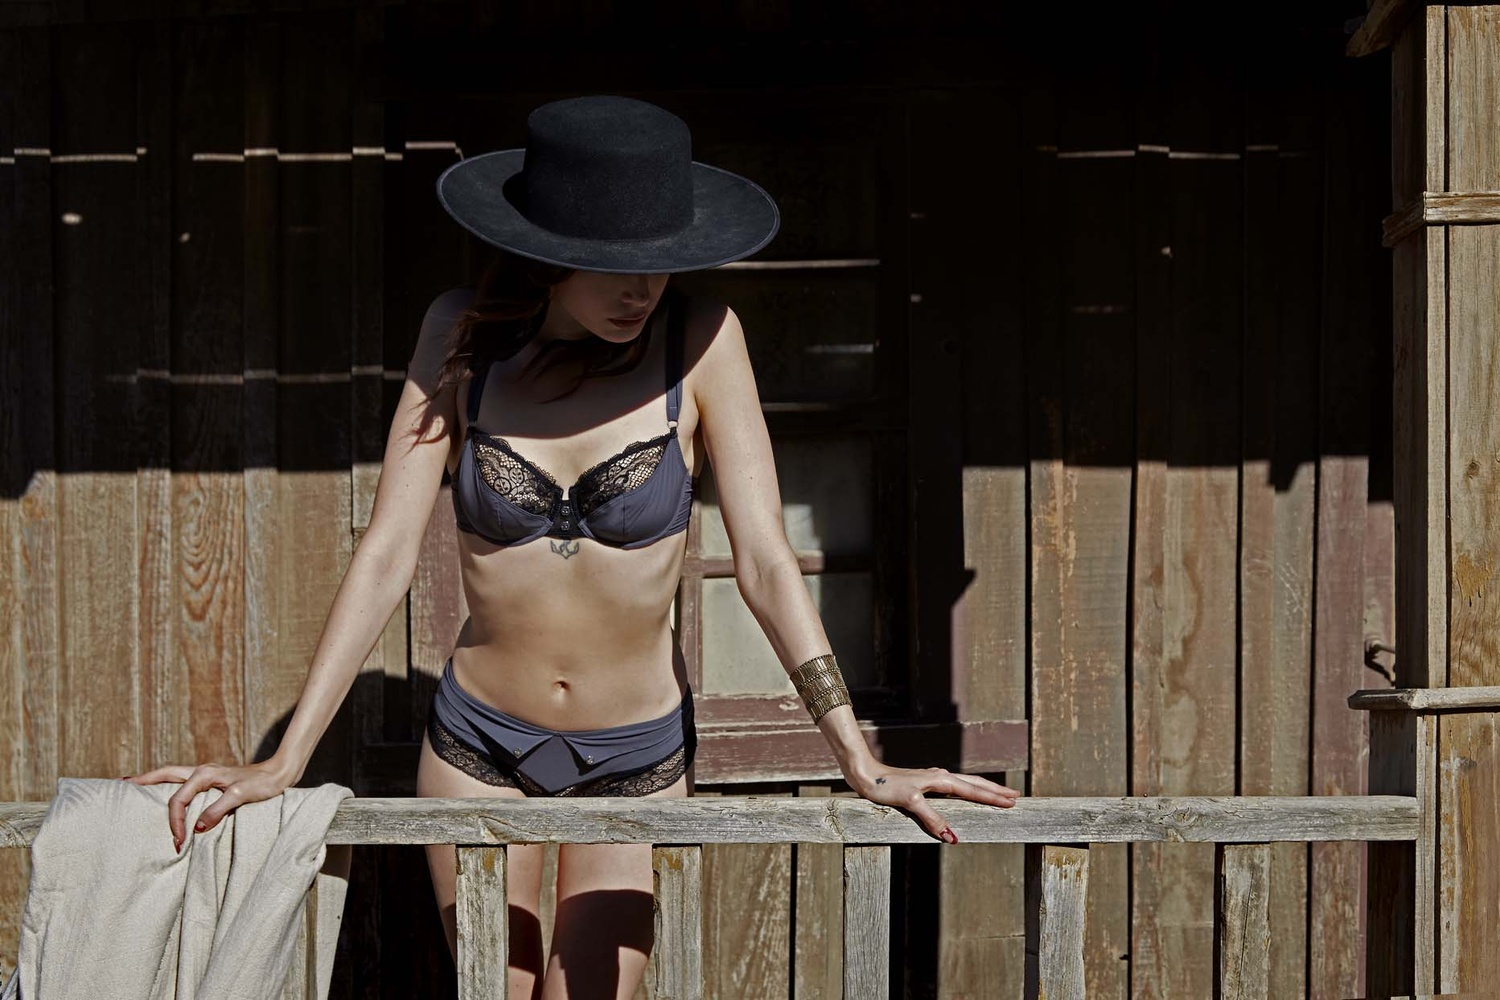 French Outdoor Lingerie shooting 01 by Stanislas Dorange